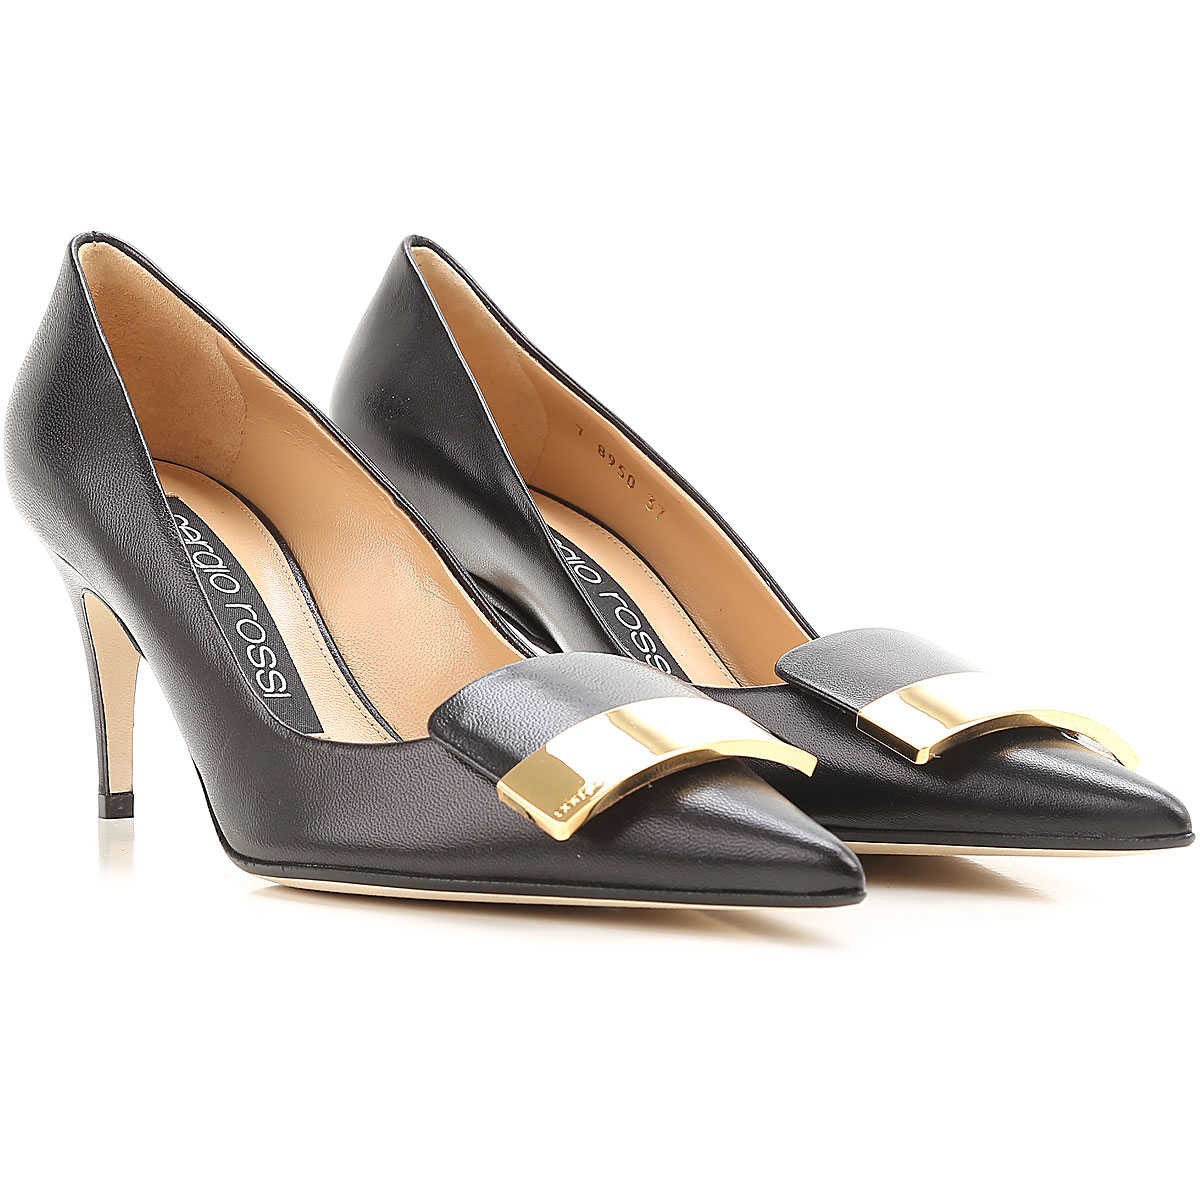 Sergio Rossi Pumps & High Heels for Women On Sale